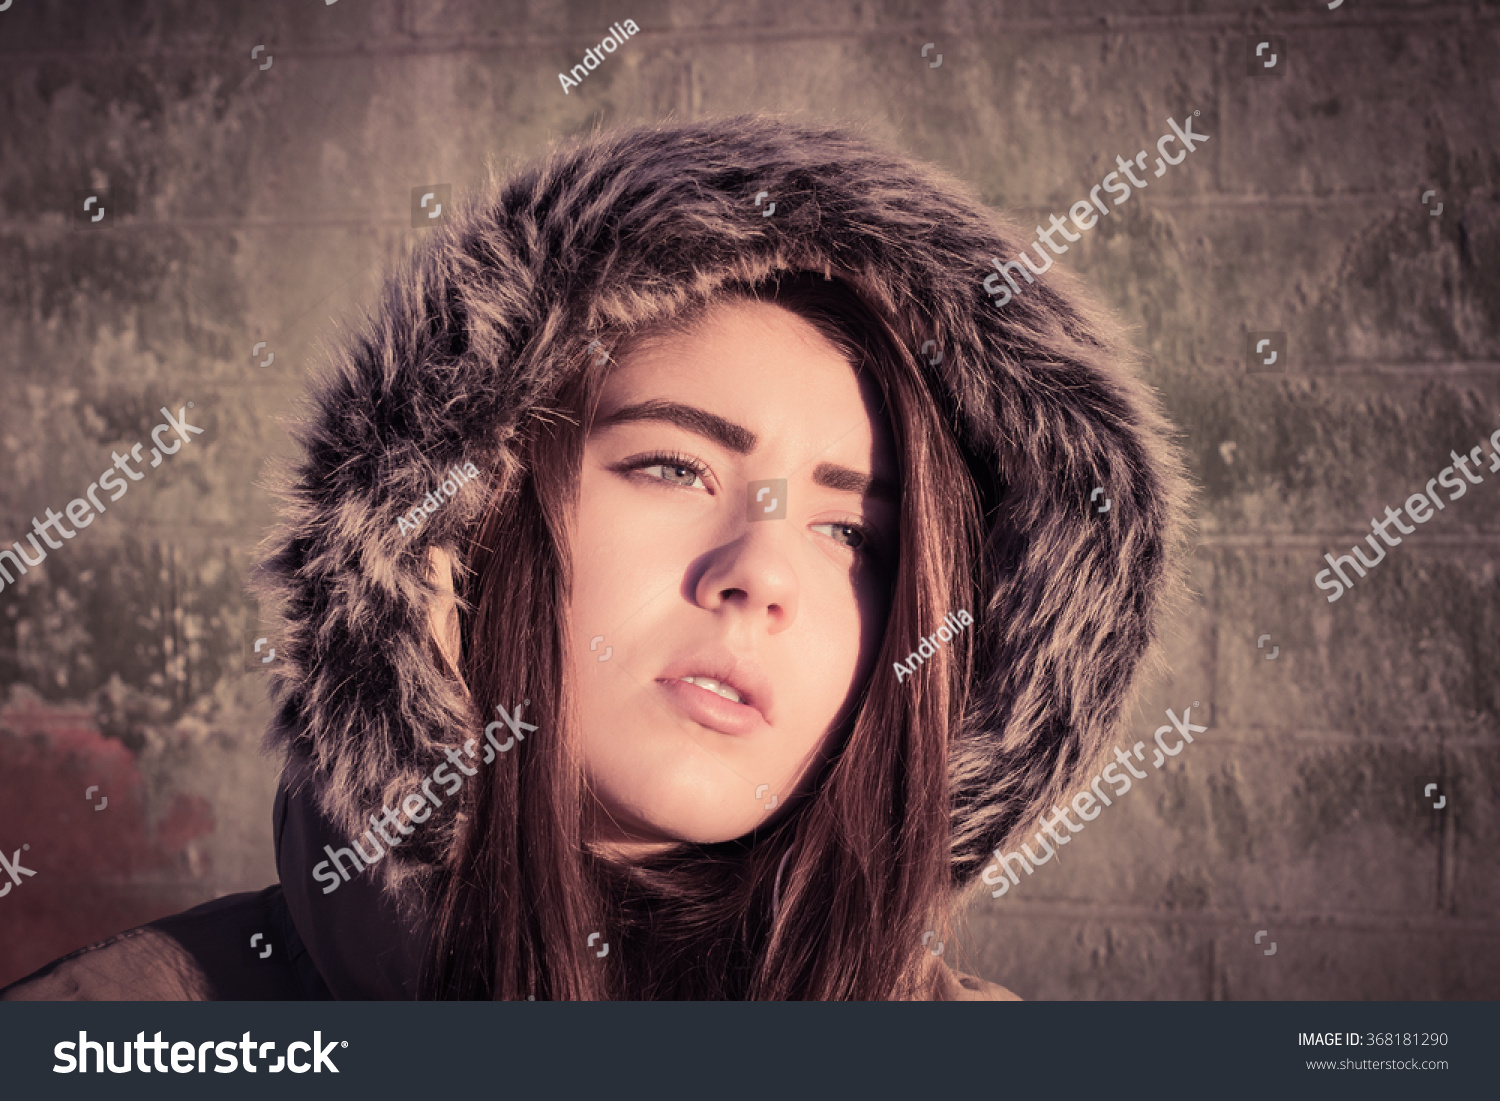 fbe158c49daa Portrait close up of a teenage girl outdoor wearing winter coat with ...